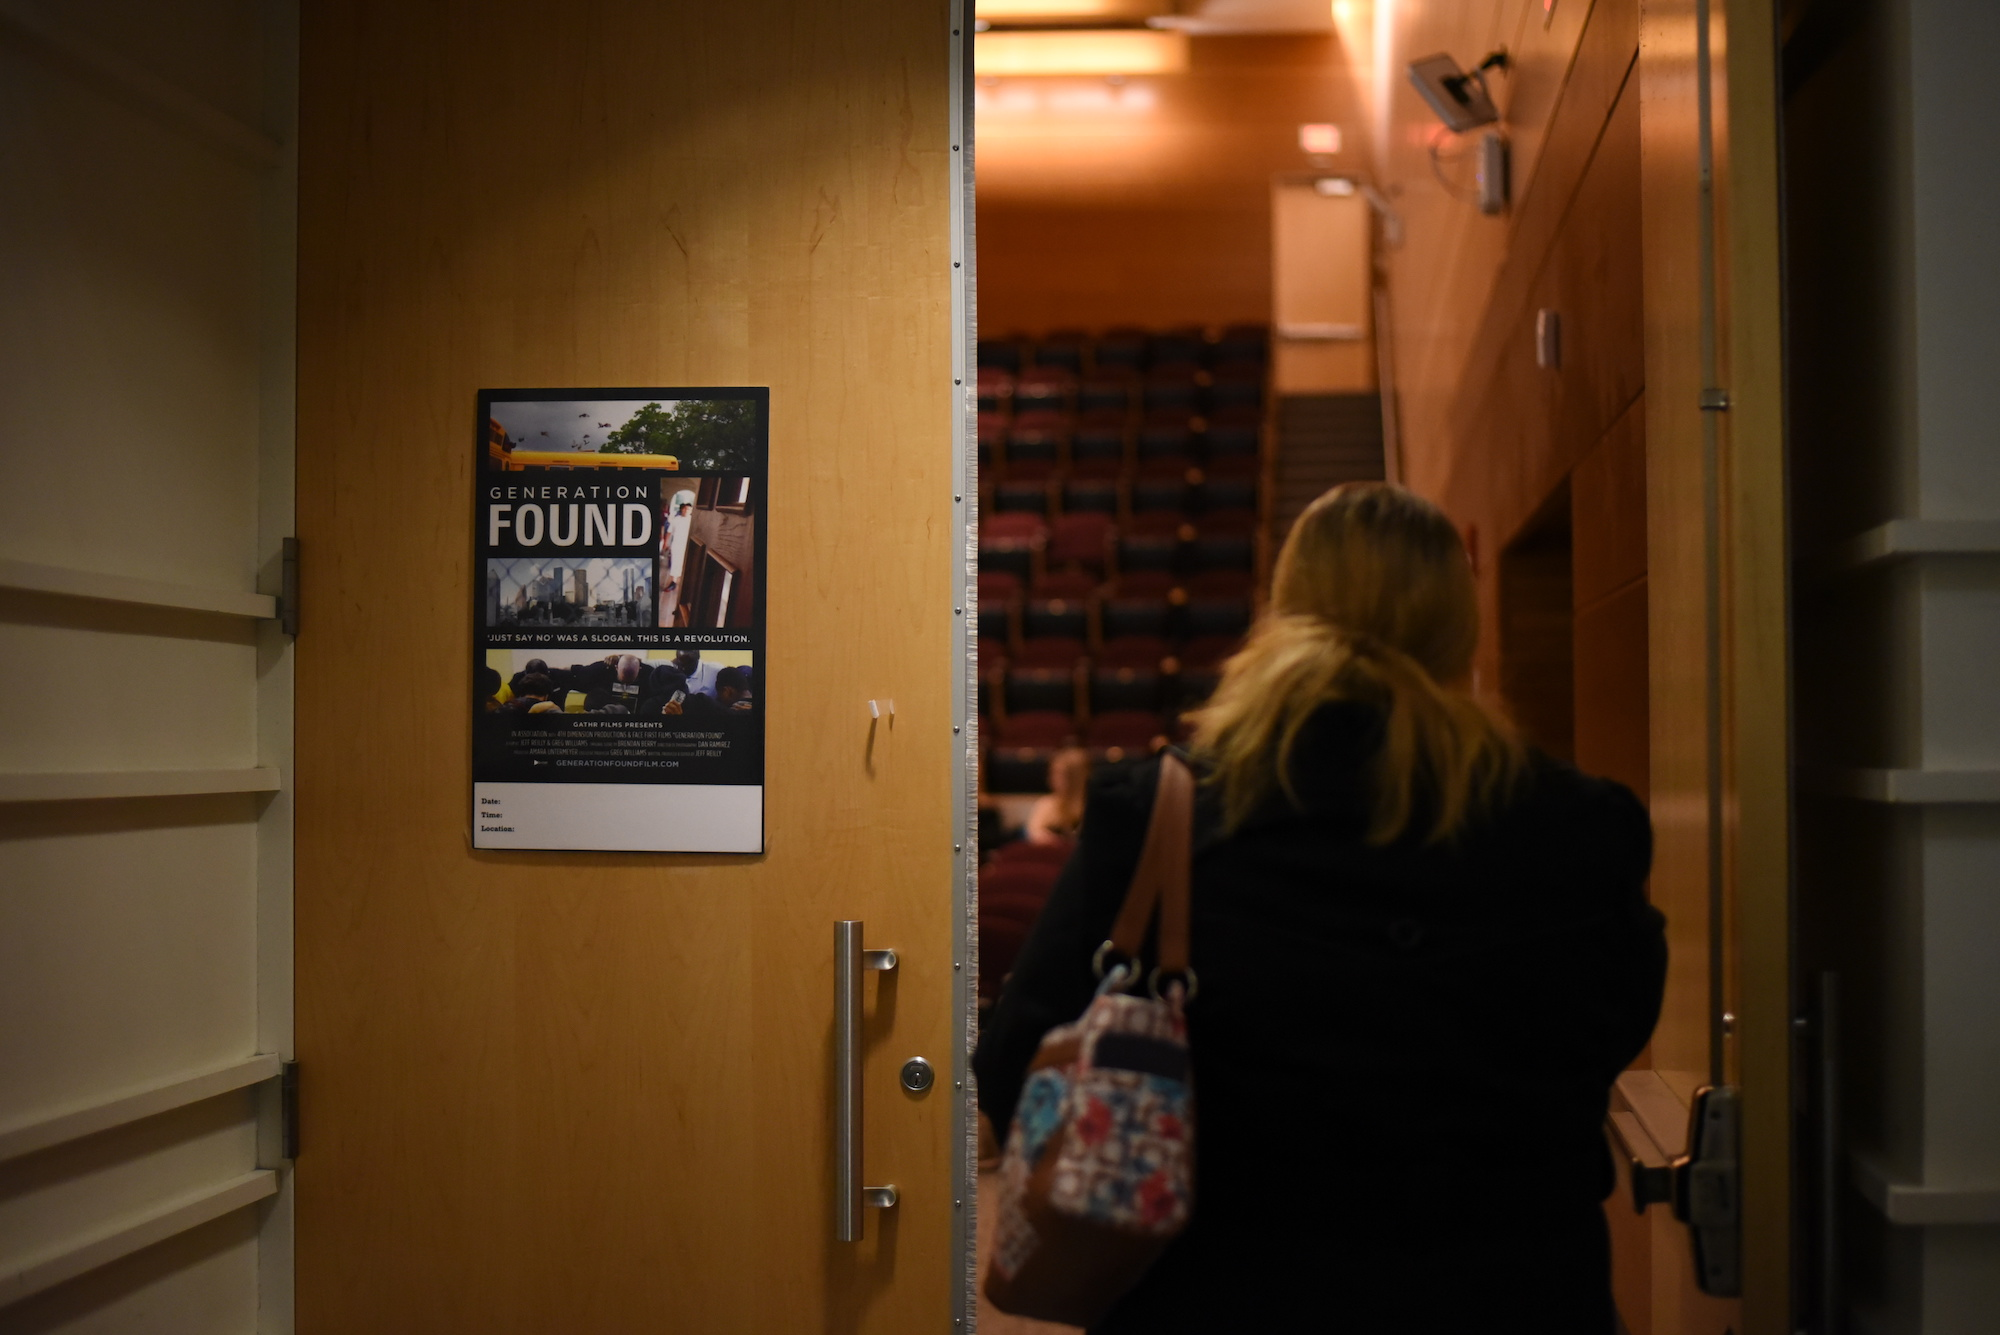 """The UConn Recovery Community presented """"Generation Found"""" about addiction for adolescence in Laurel Hall on Feb. 15. The film focuses on various adolescent recovery groups in Houston, Texas. (Charlotte Lao/The Daily Campus)"""